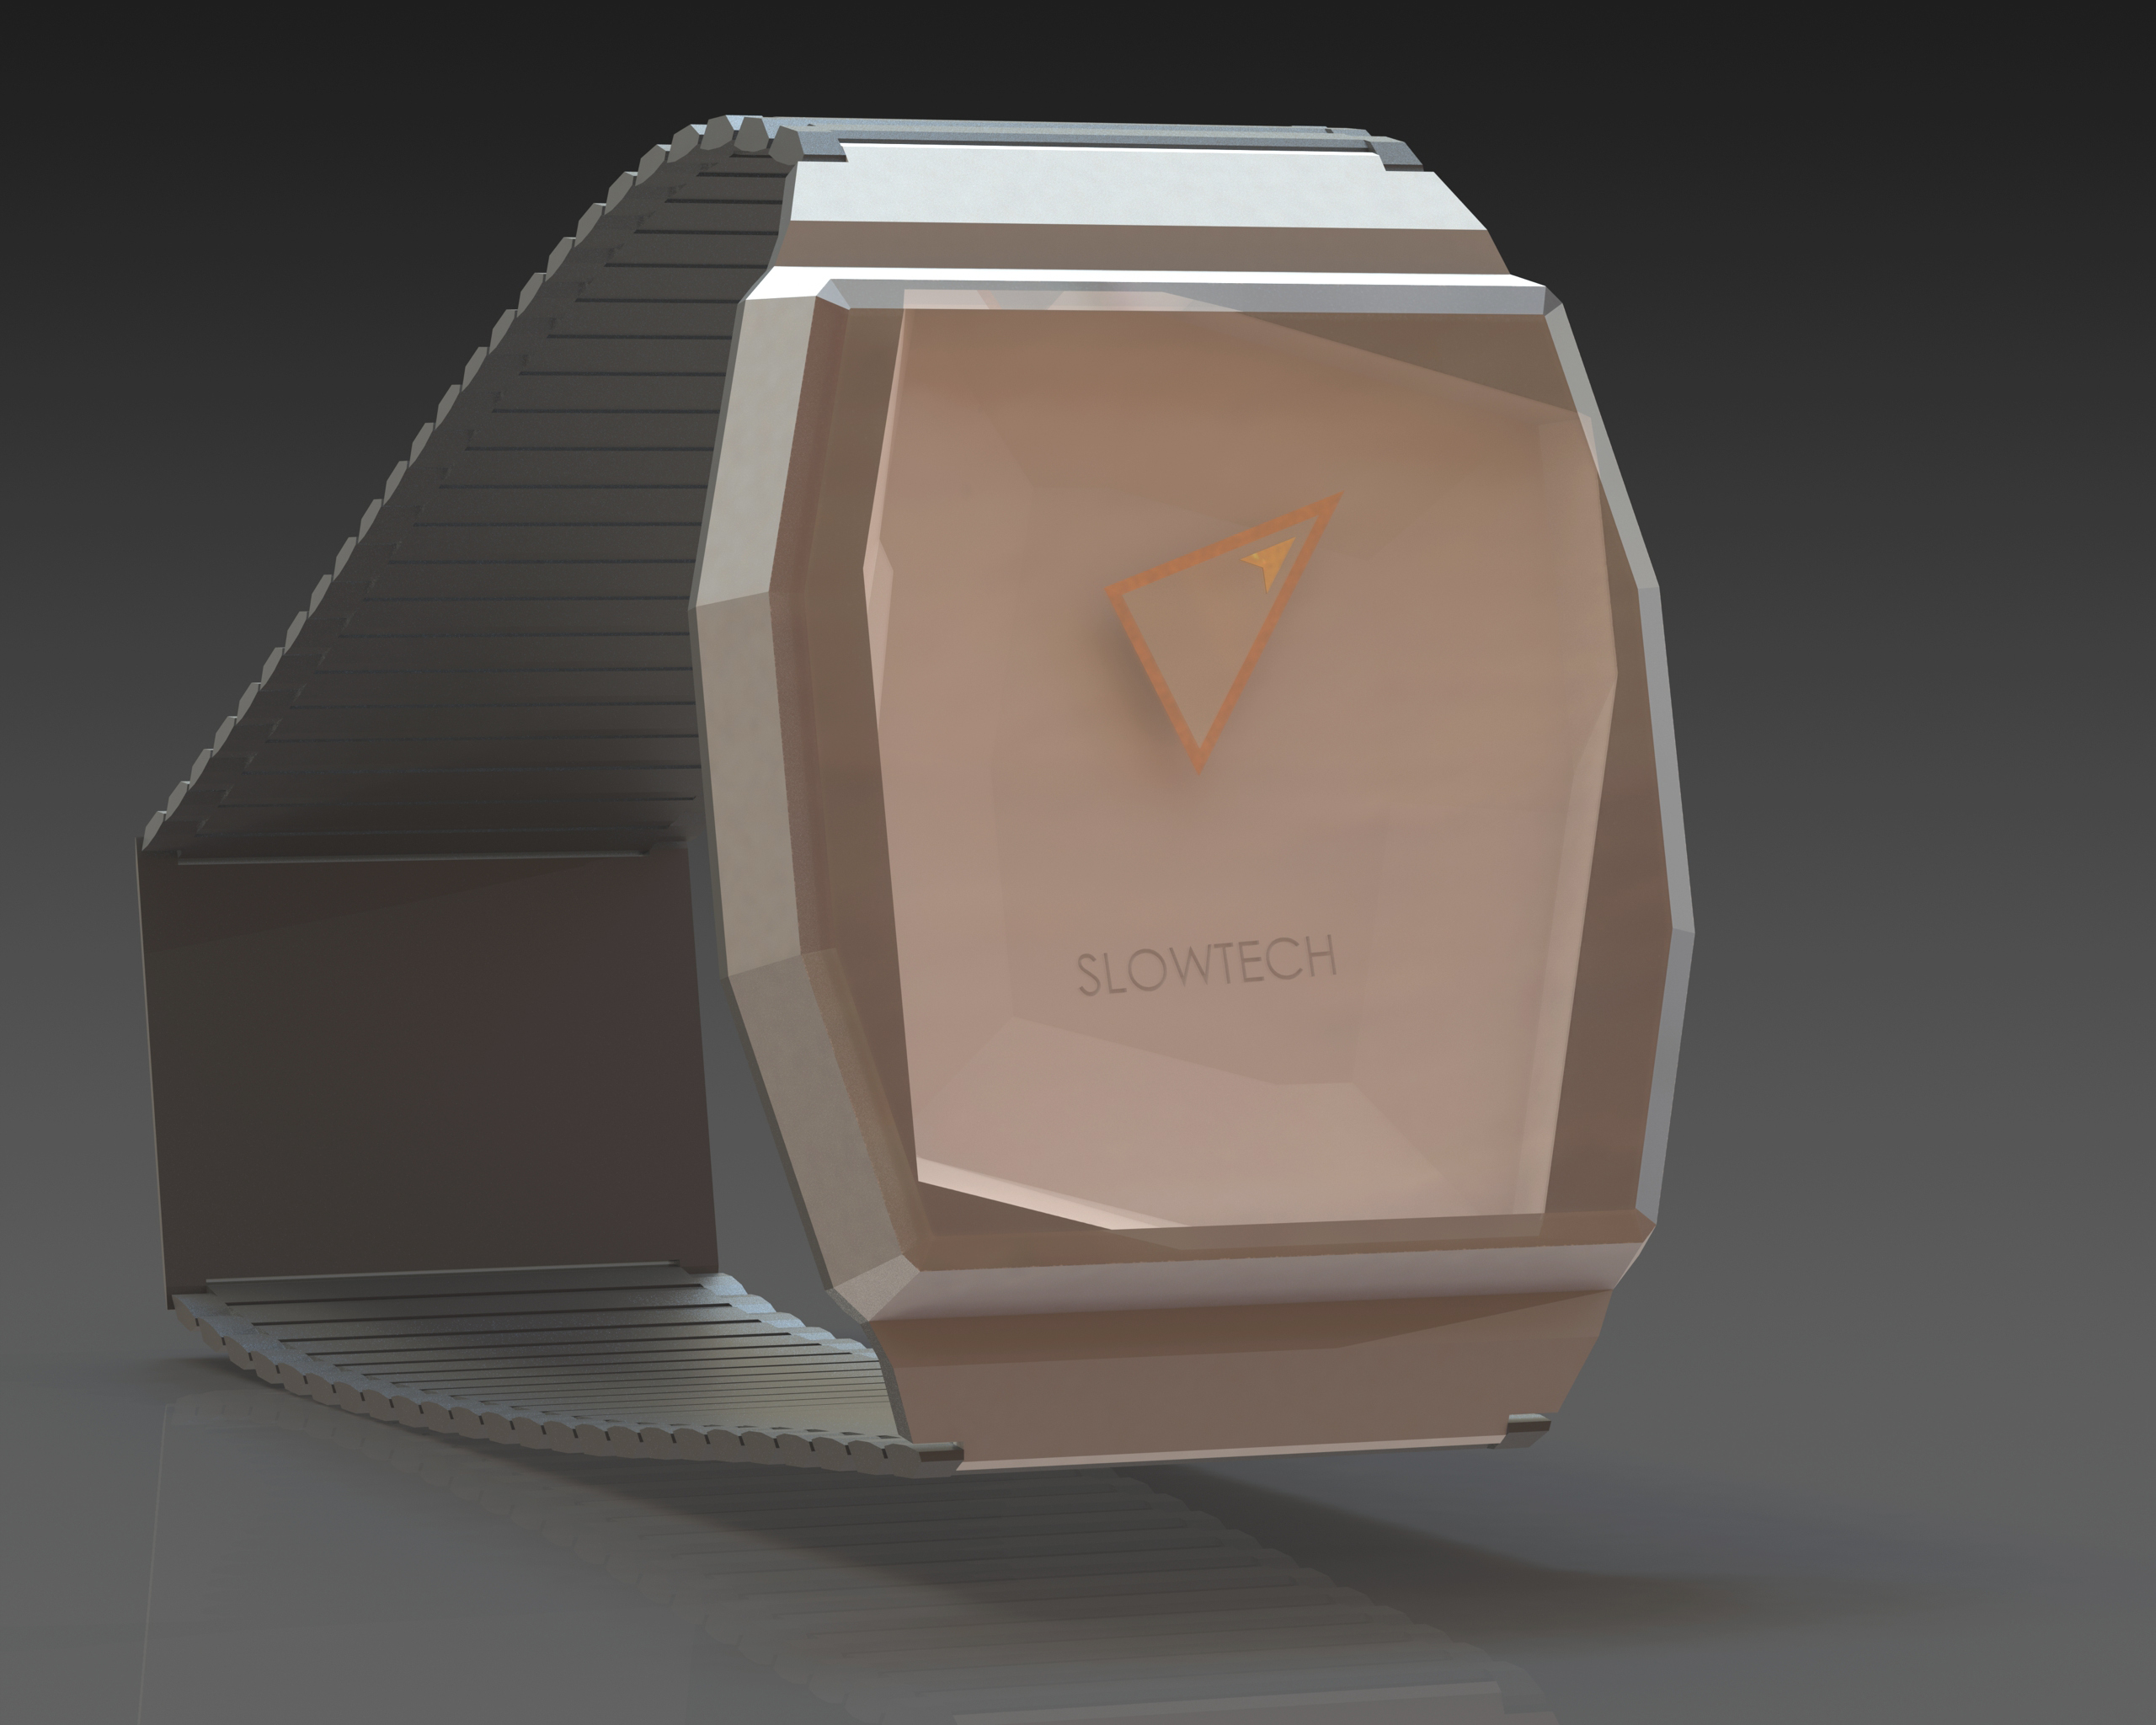 Wristwatch render in CAD, Slowtech by Sebastian Galo